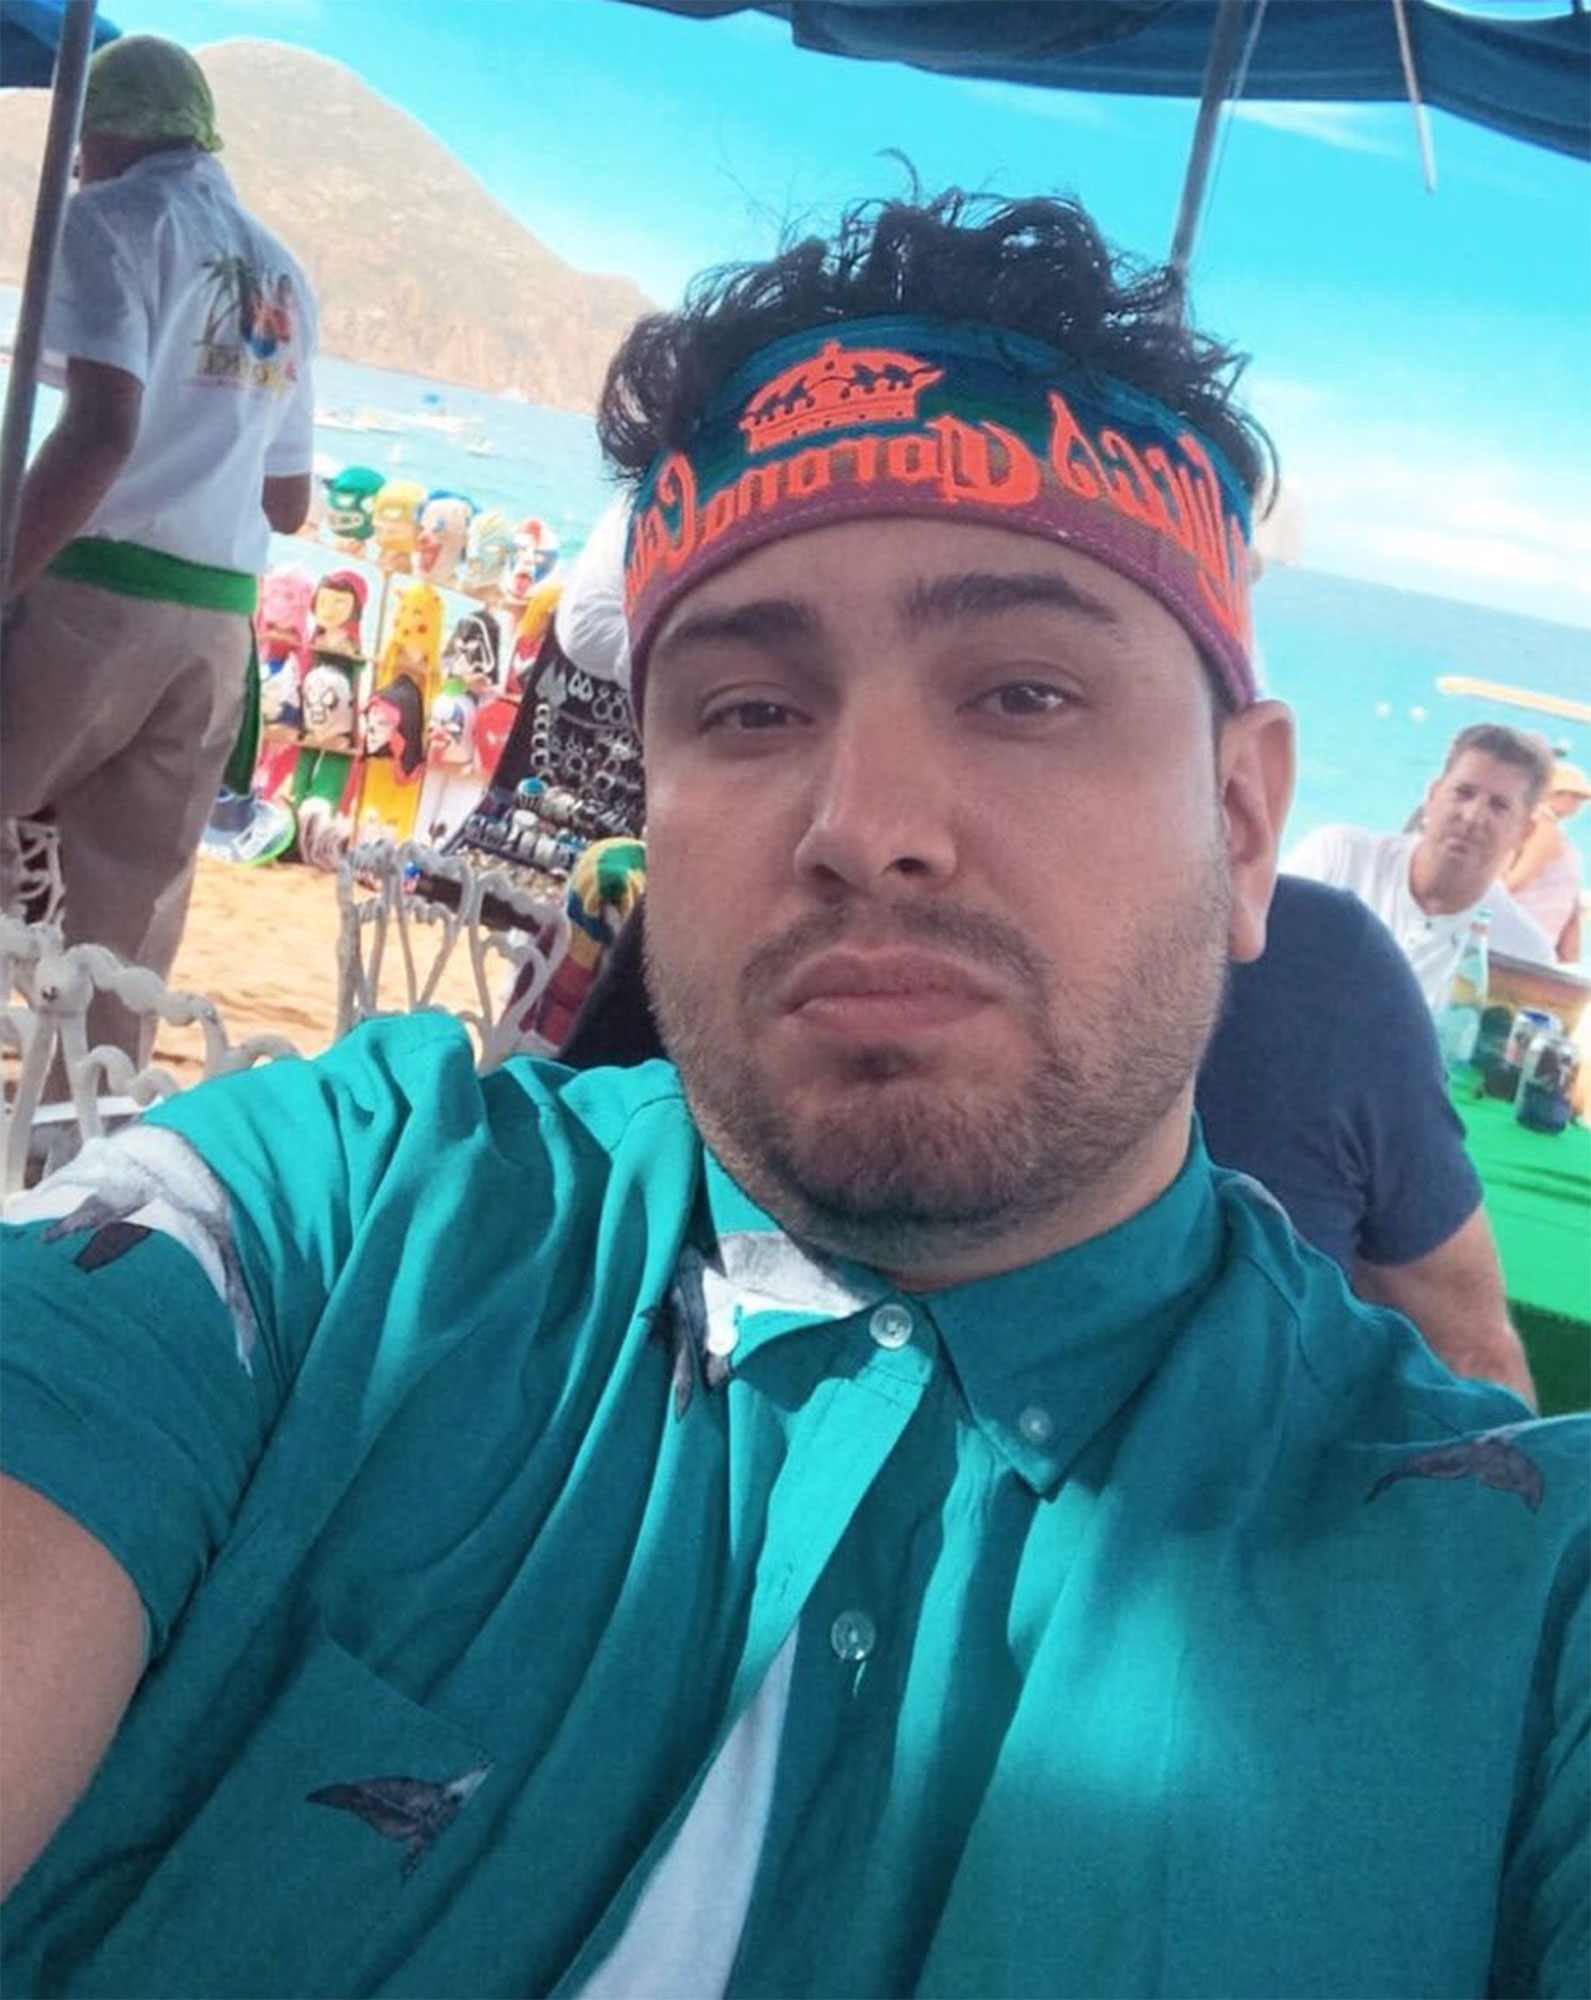 """frankie delgado - """"After high school I started a spring break company and we organized buses from different colleges in California to take students to Tijuana on the weekends,"""" he said. """"It was a fun experience for me to get into party life and nightlife."""""""